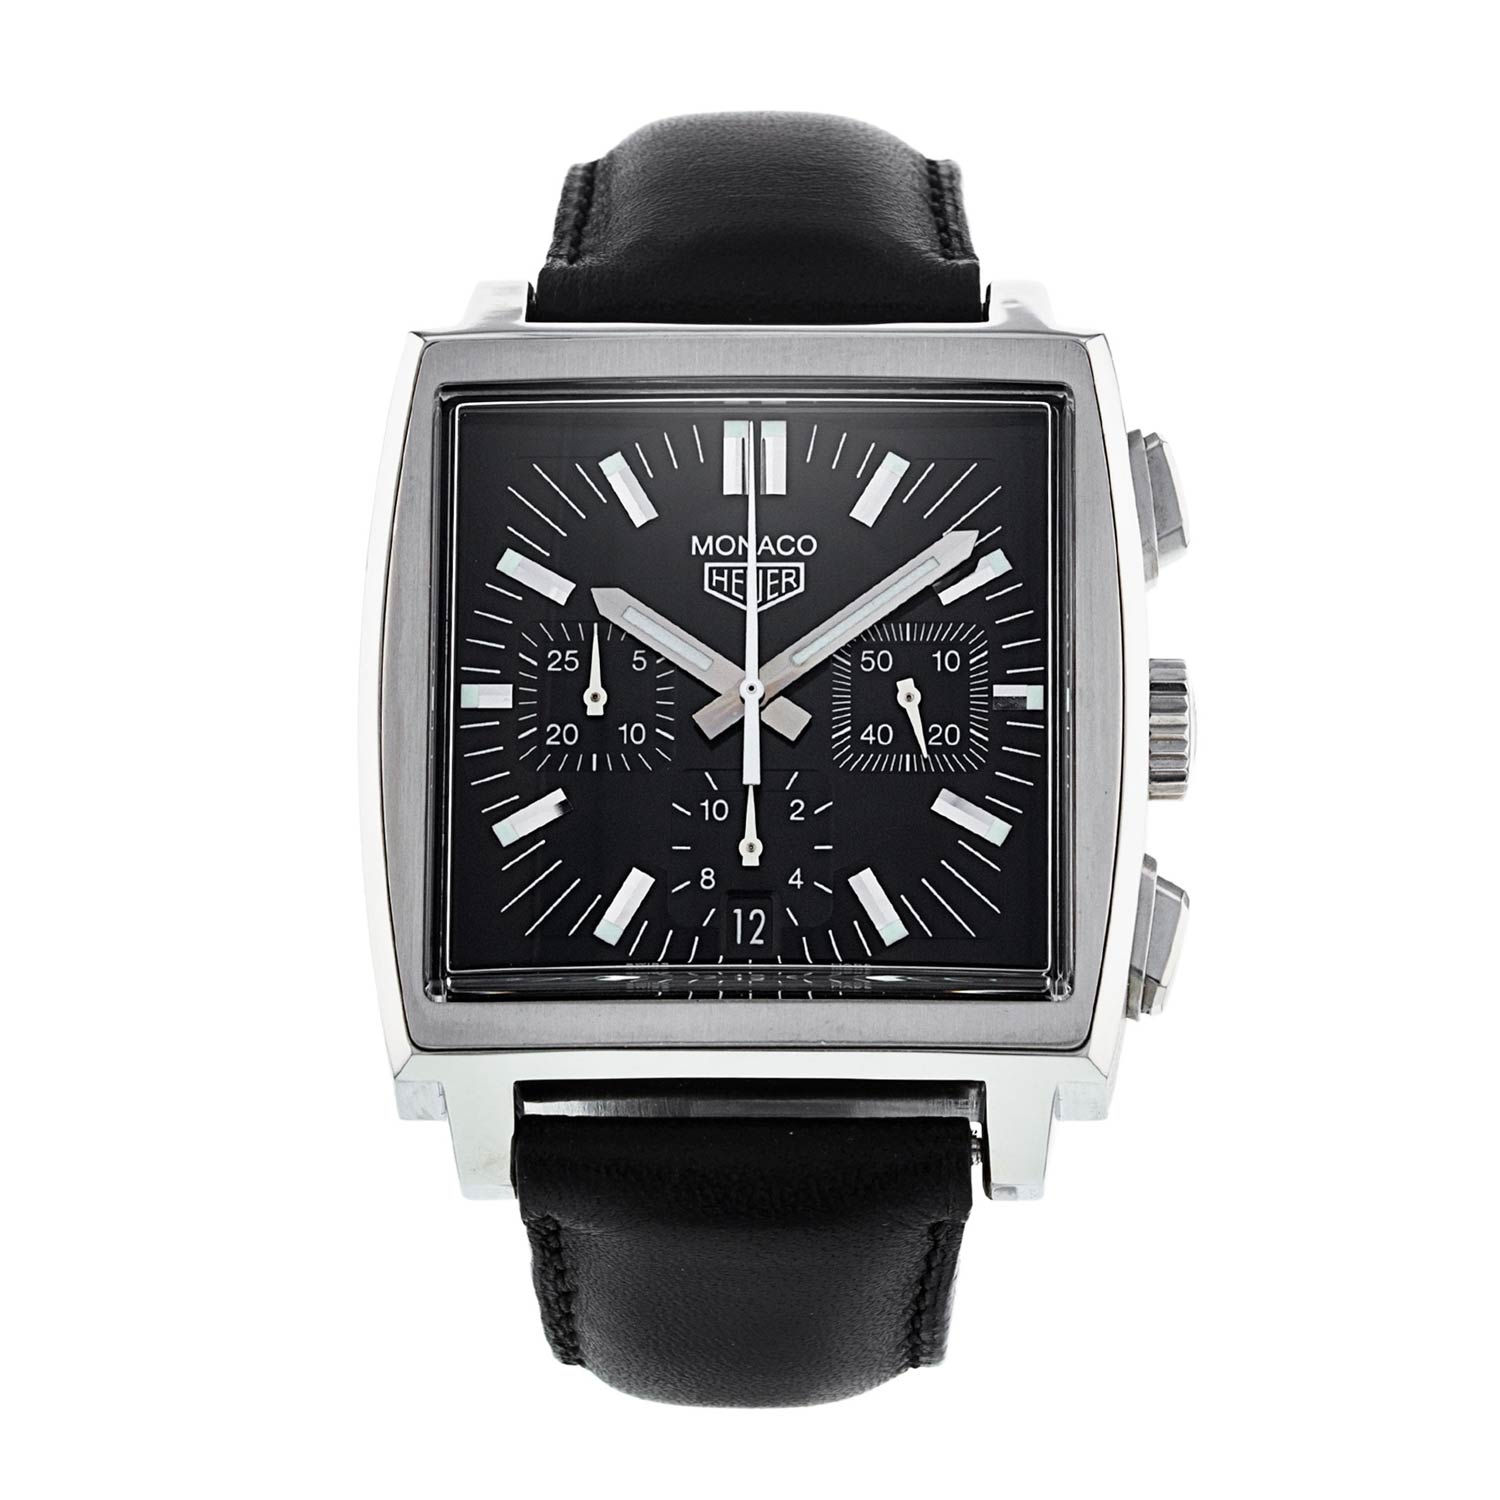 Characterised by a sculpted black dial with three counters, this TAG Heuer Monaco ref. CS2111 in our shop is from 2001